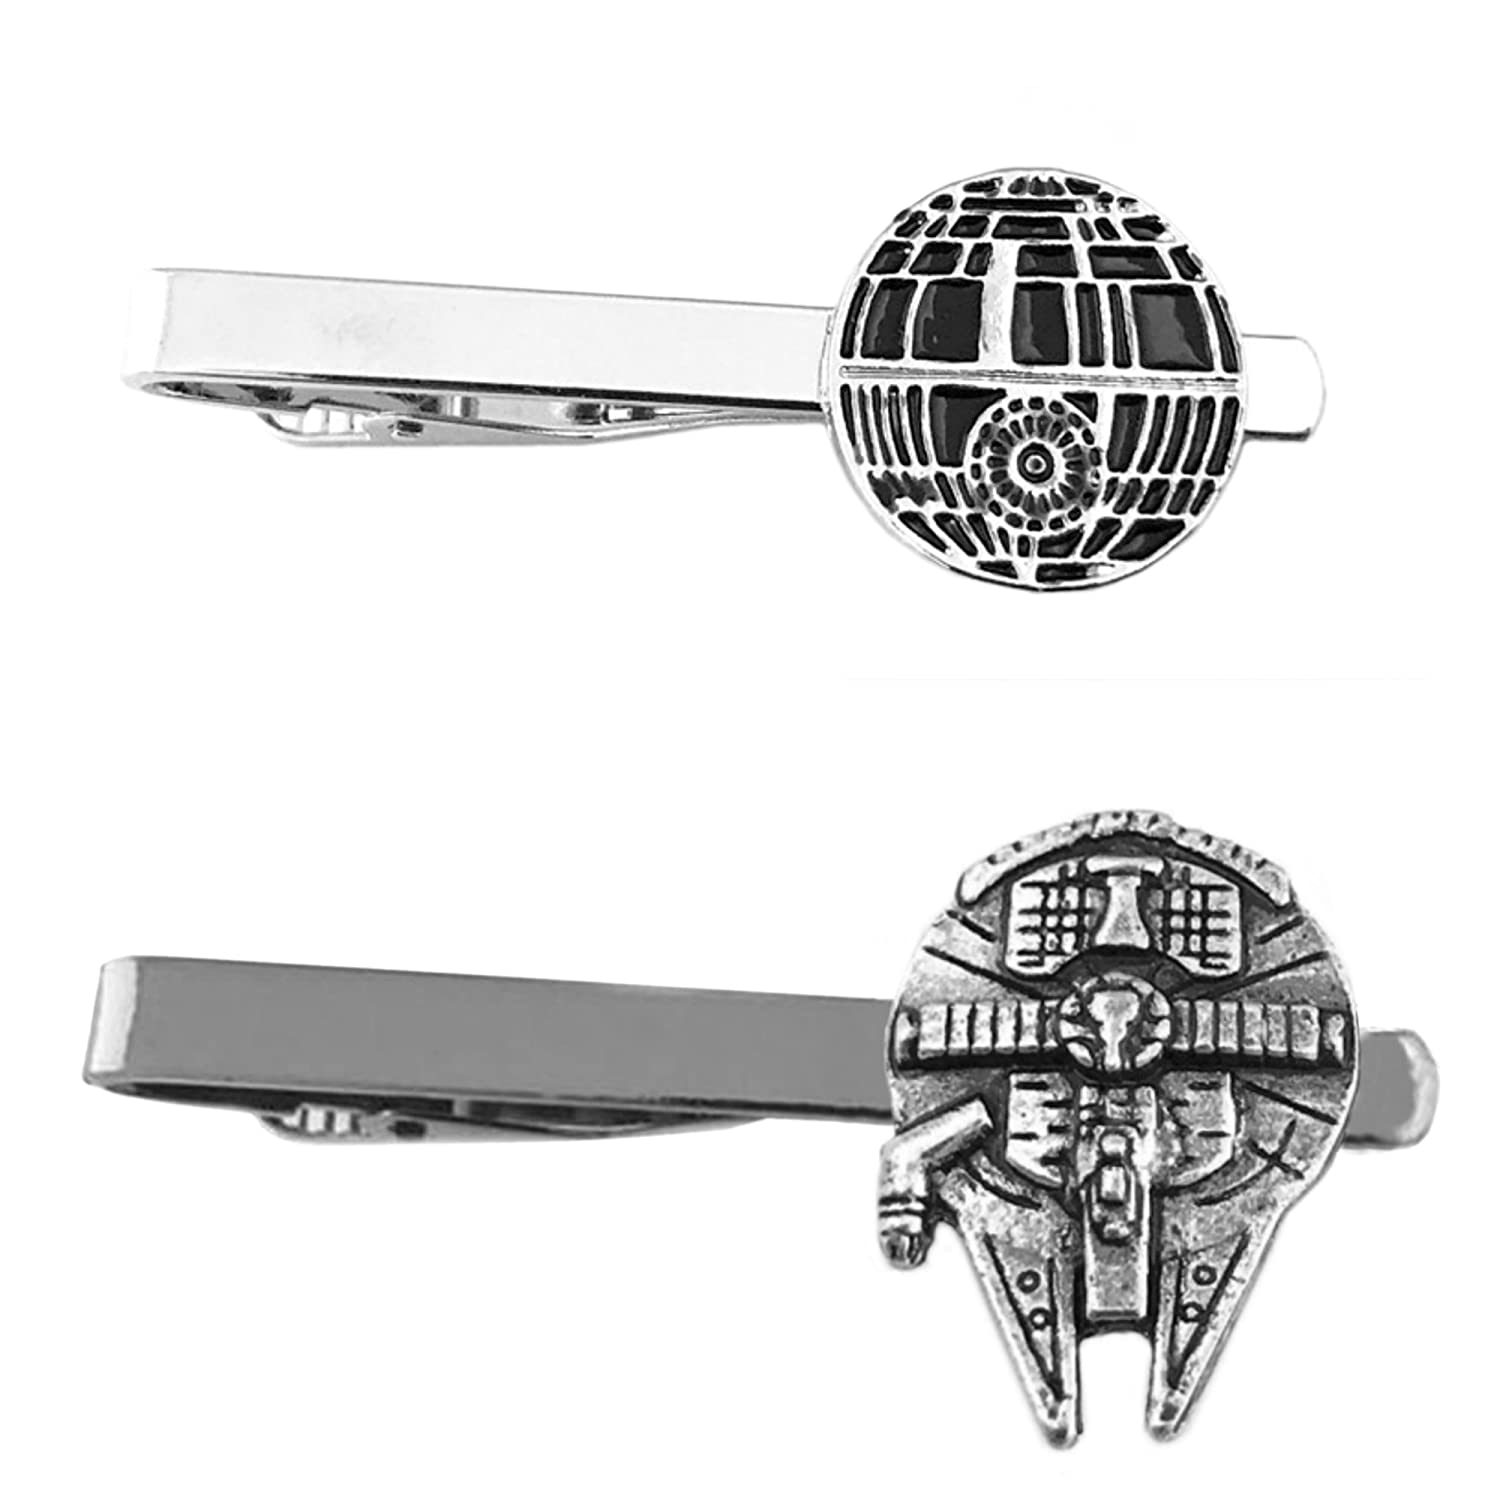 Outlander Star Wars - Death Star & Millenium Falcon - Tiebar Tie Clasp Set of 2 Wedding Superhero Logo w/Gift Box Outlander Brand